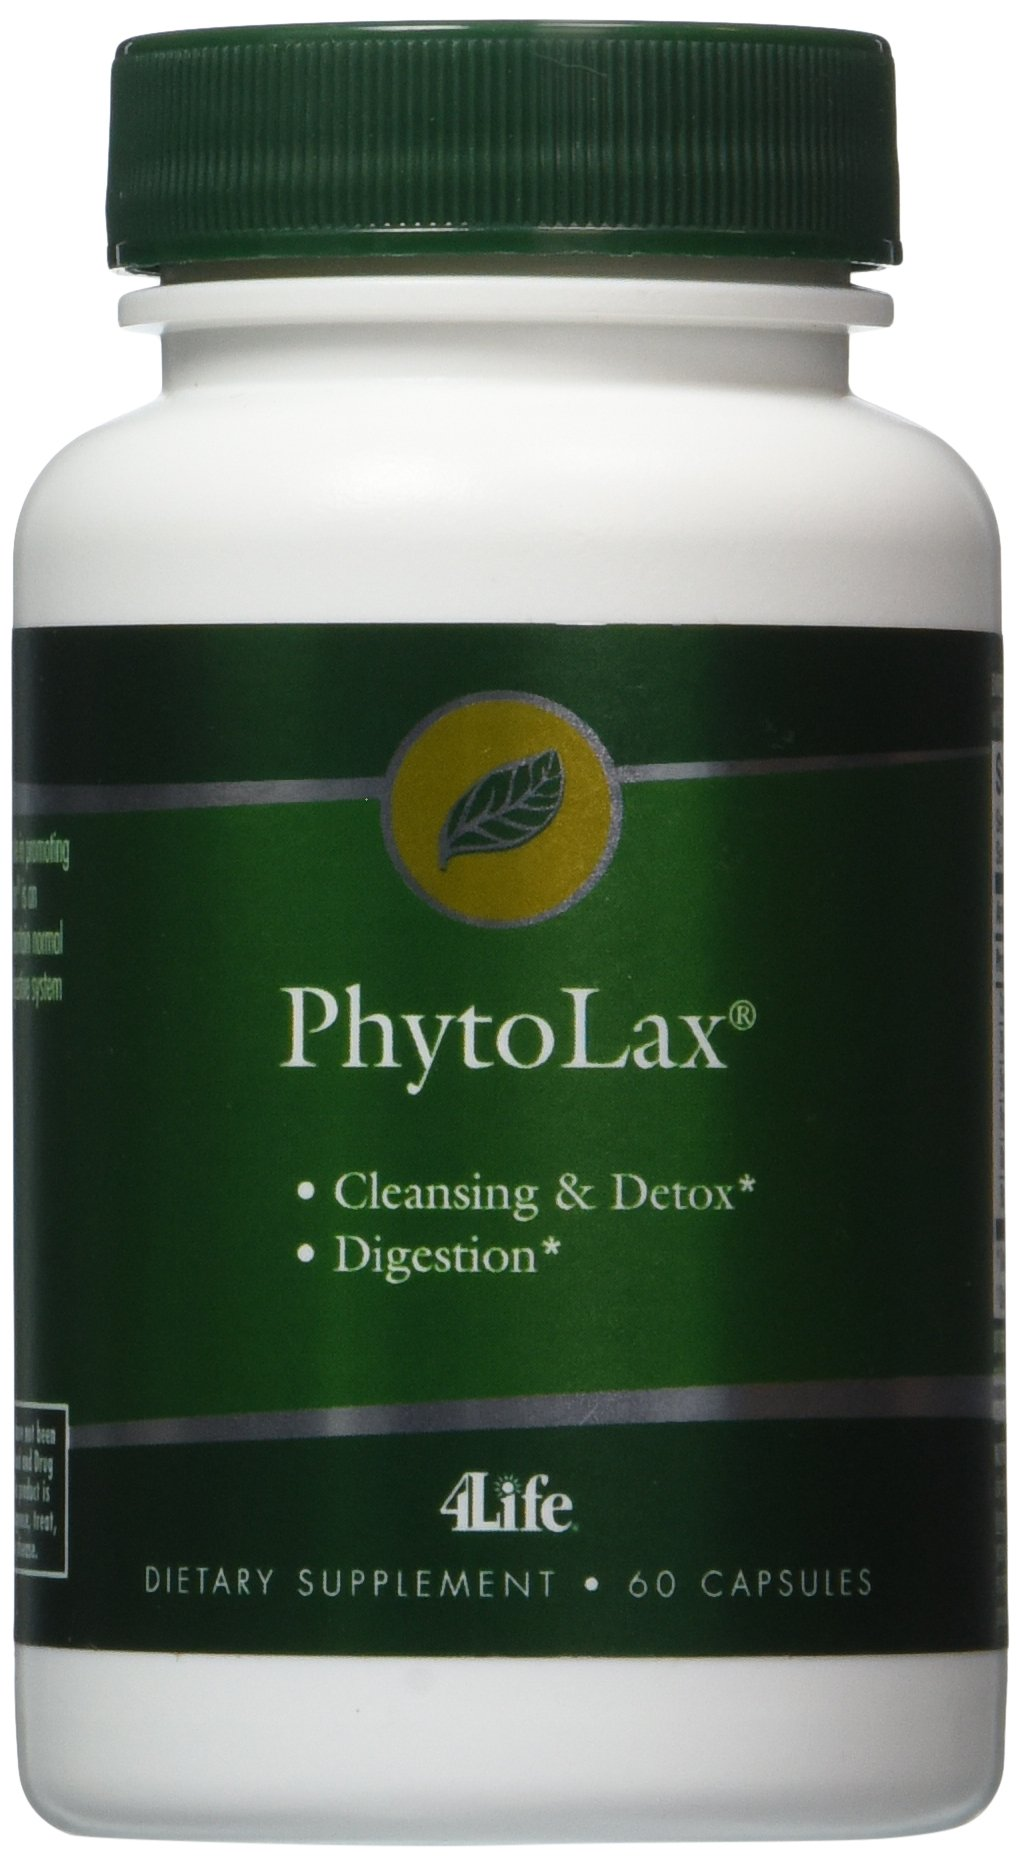 PhytoLax by 4Life - 60 capsules